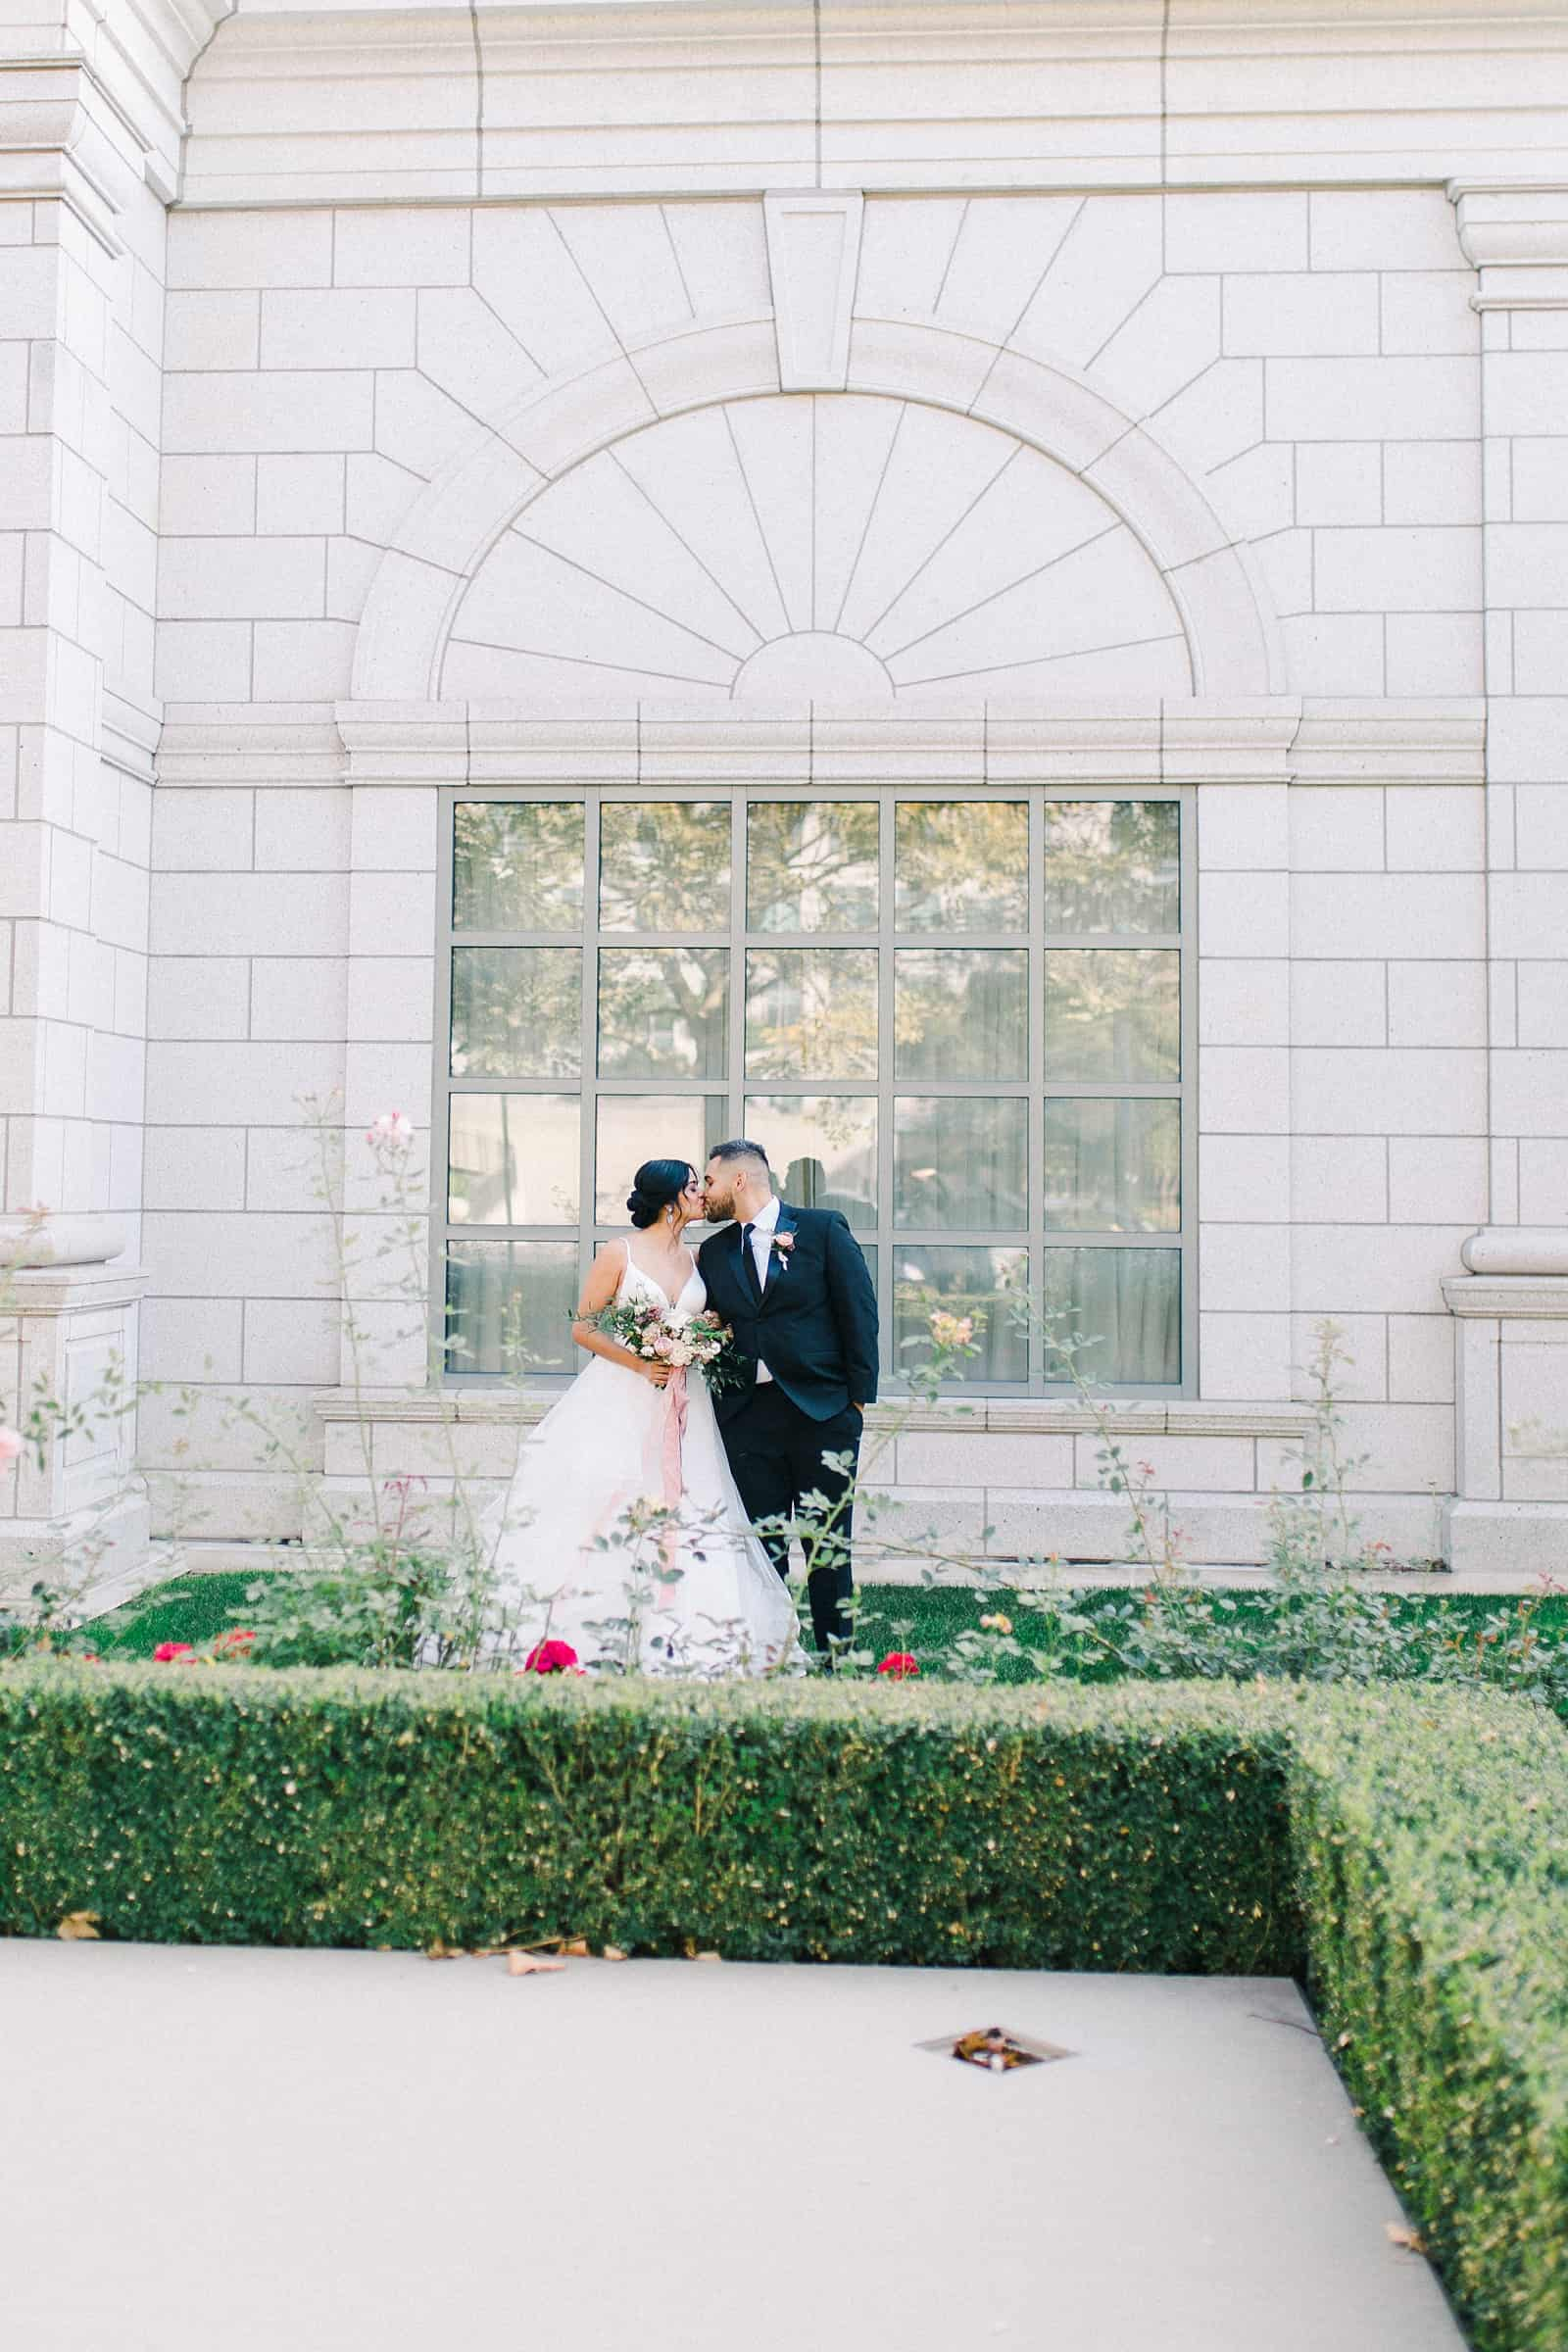 Grand America Hotel wedding, bride and groom in garden with roses, summer wedding